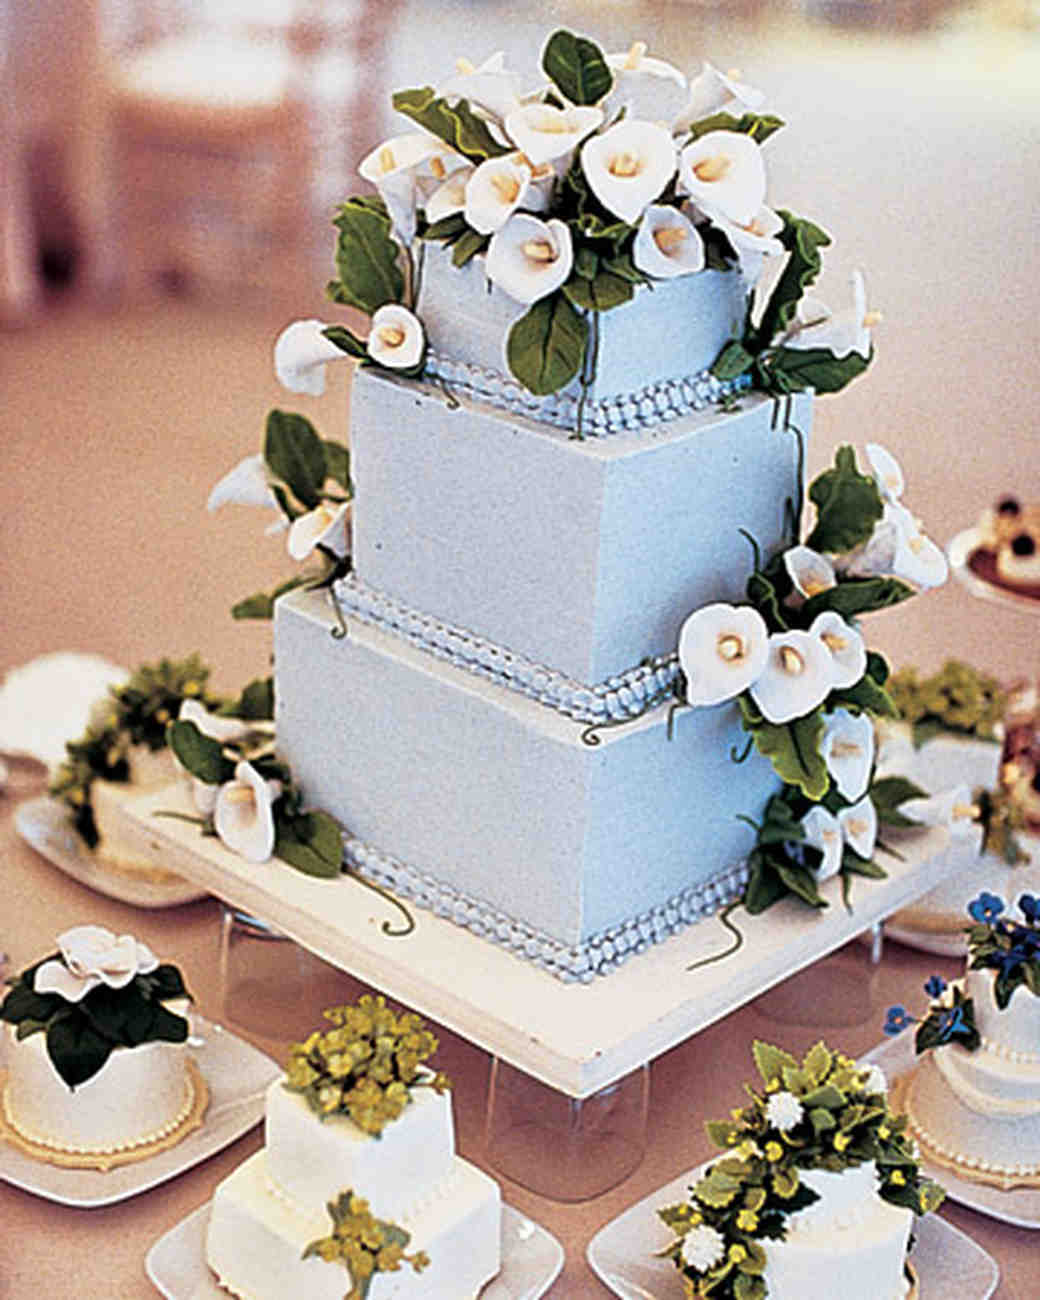 Blue Wedding Cake with Calla Lillies